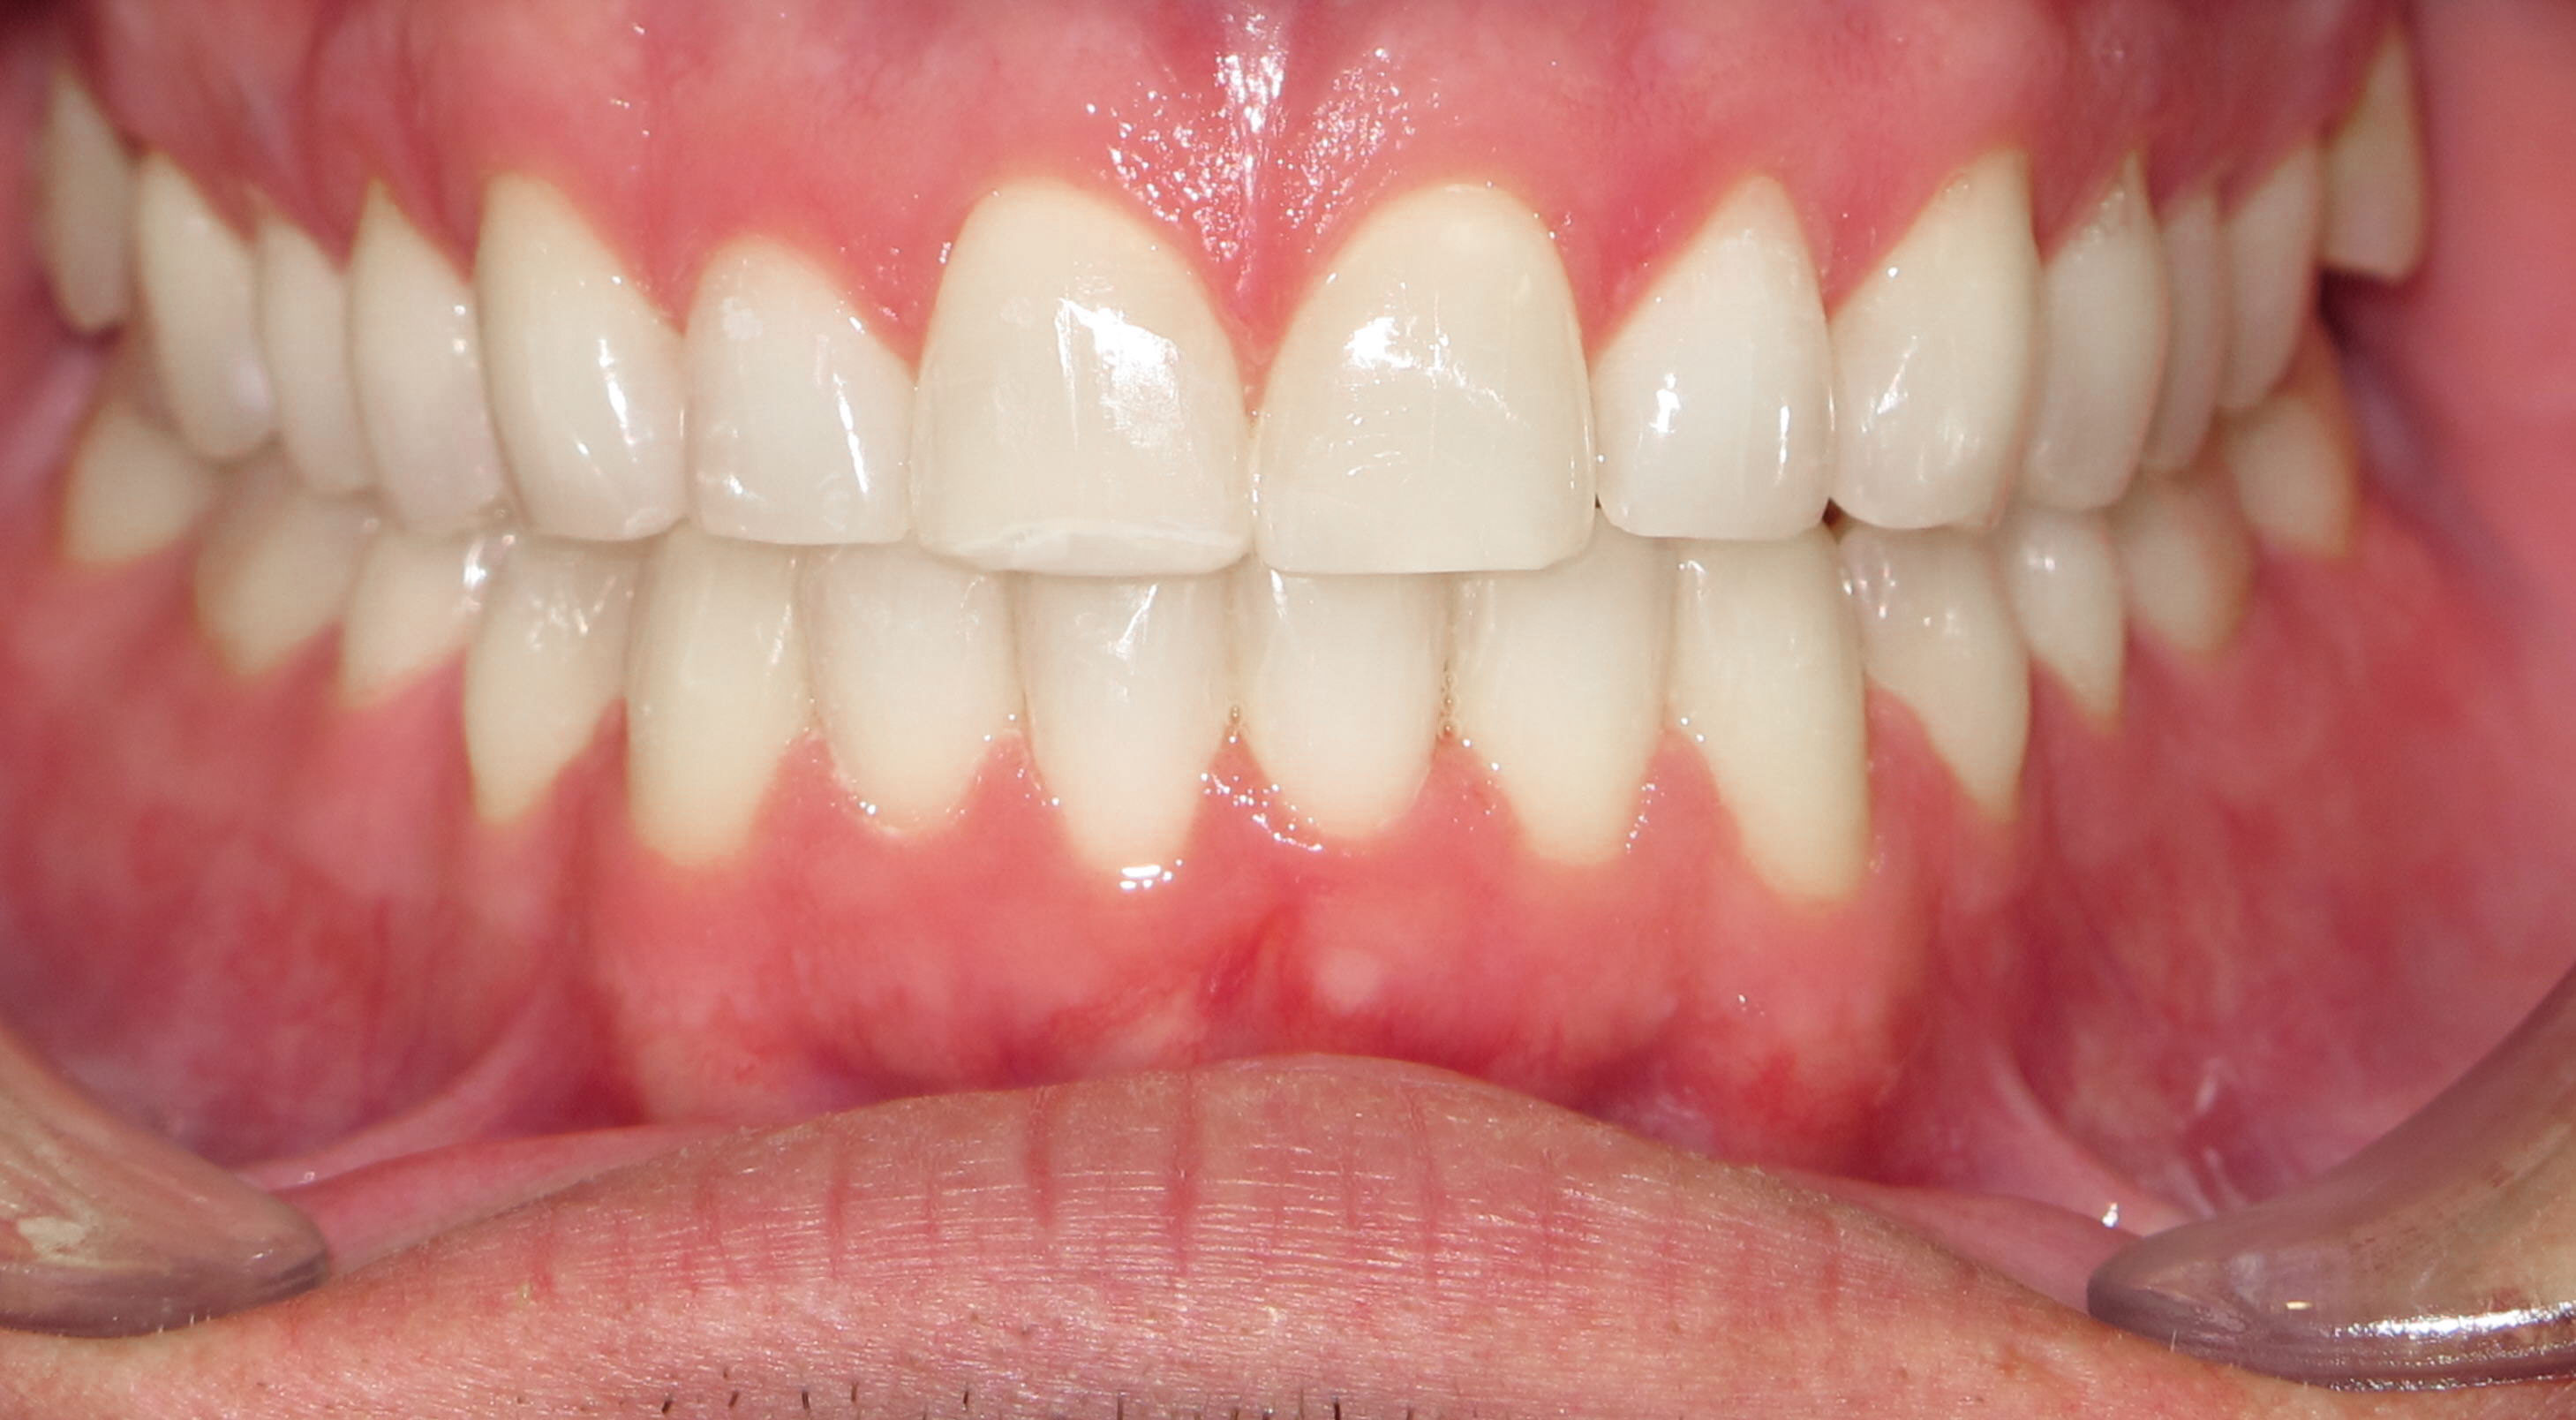 FIXING ALIGNMENT WITH BRACES - AFTER